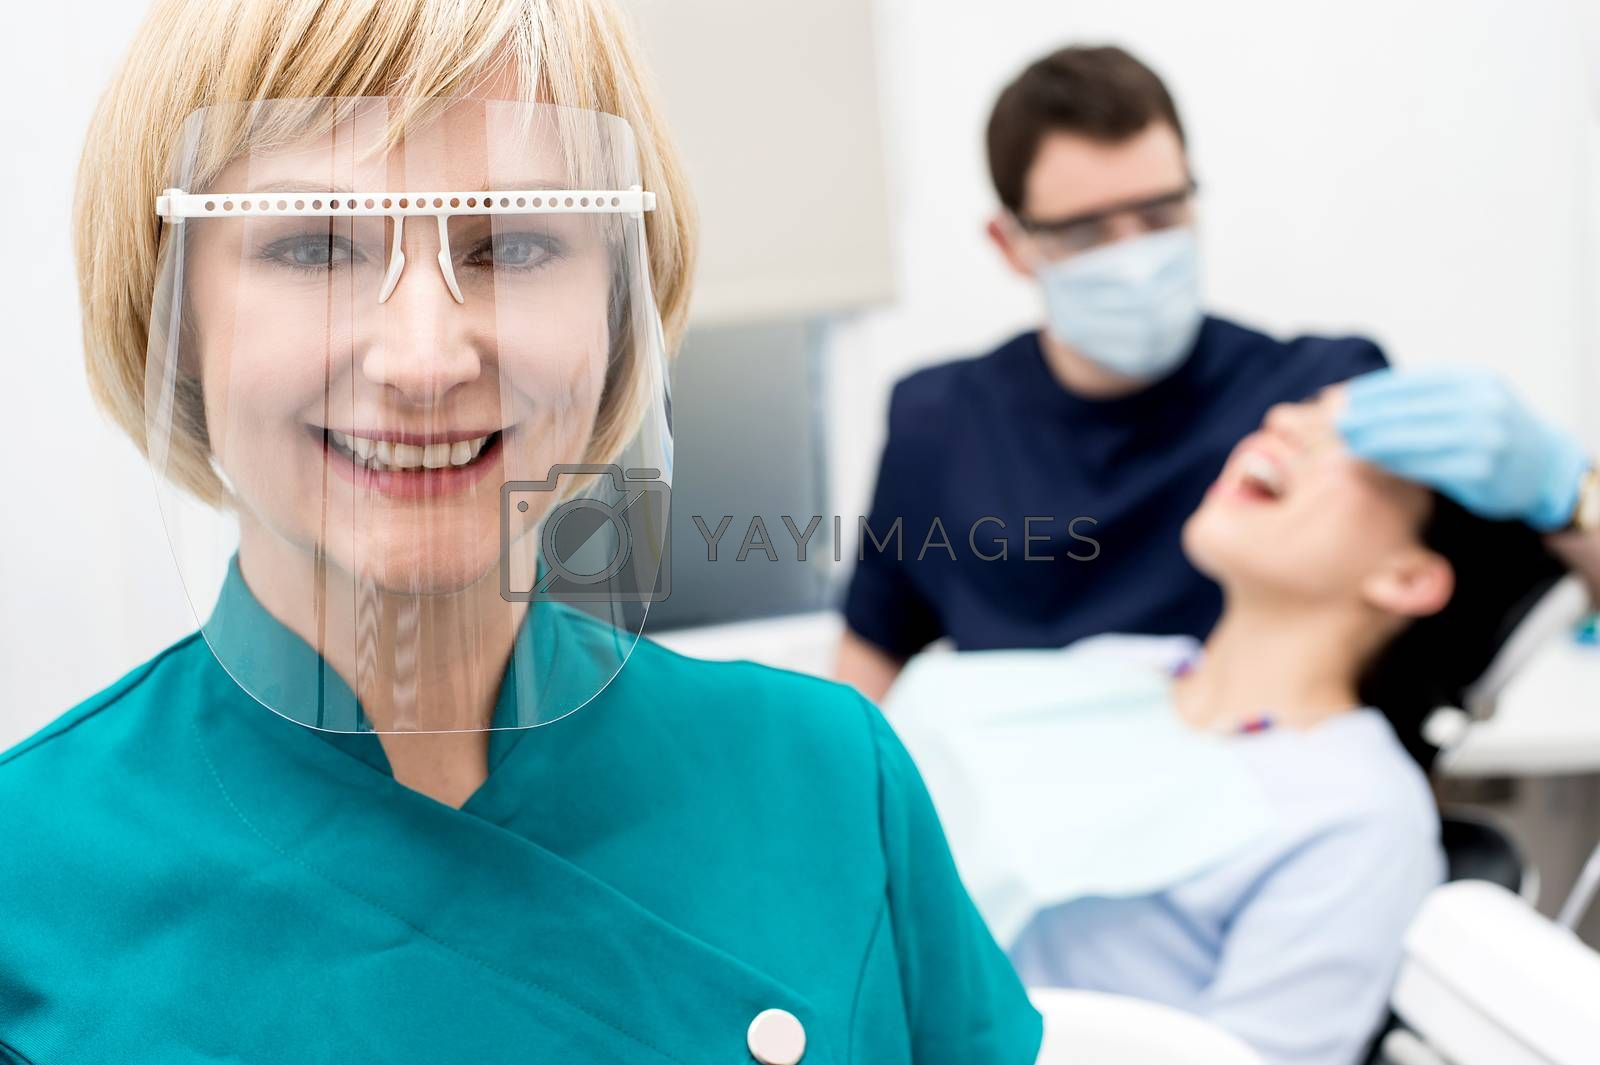 Woman assistant posing, behind dentist treating patient